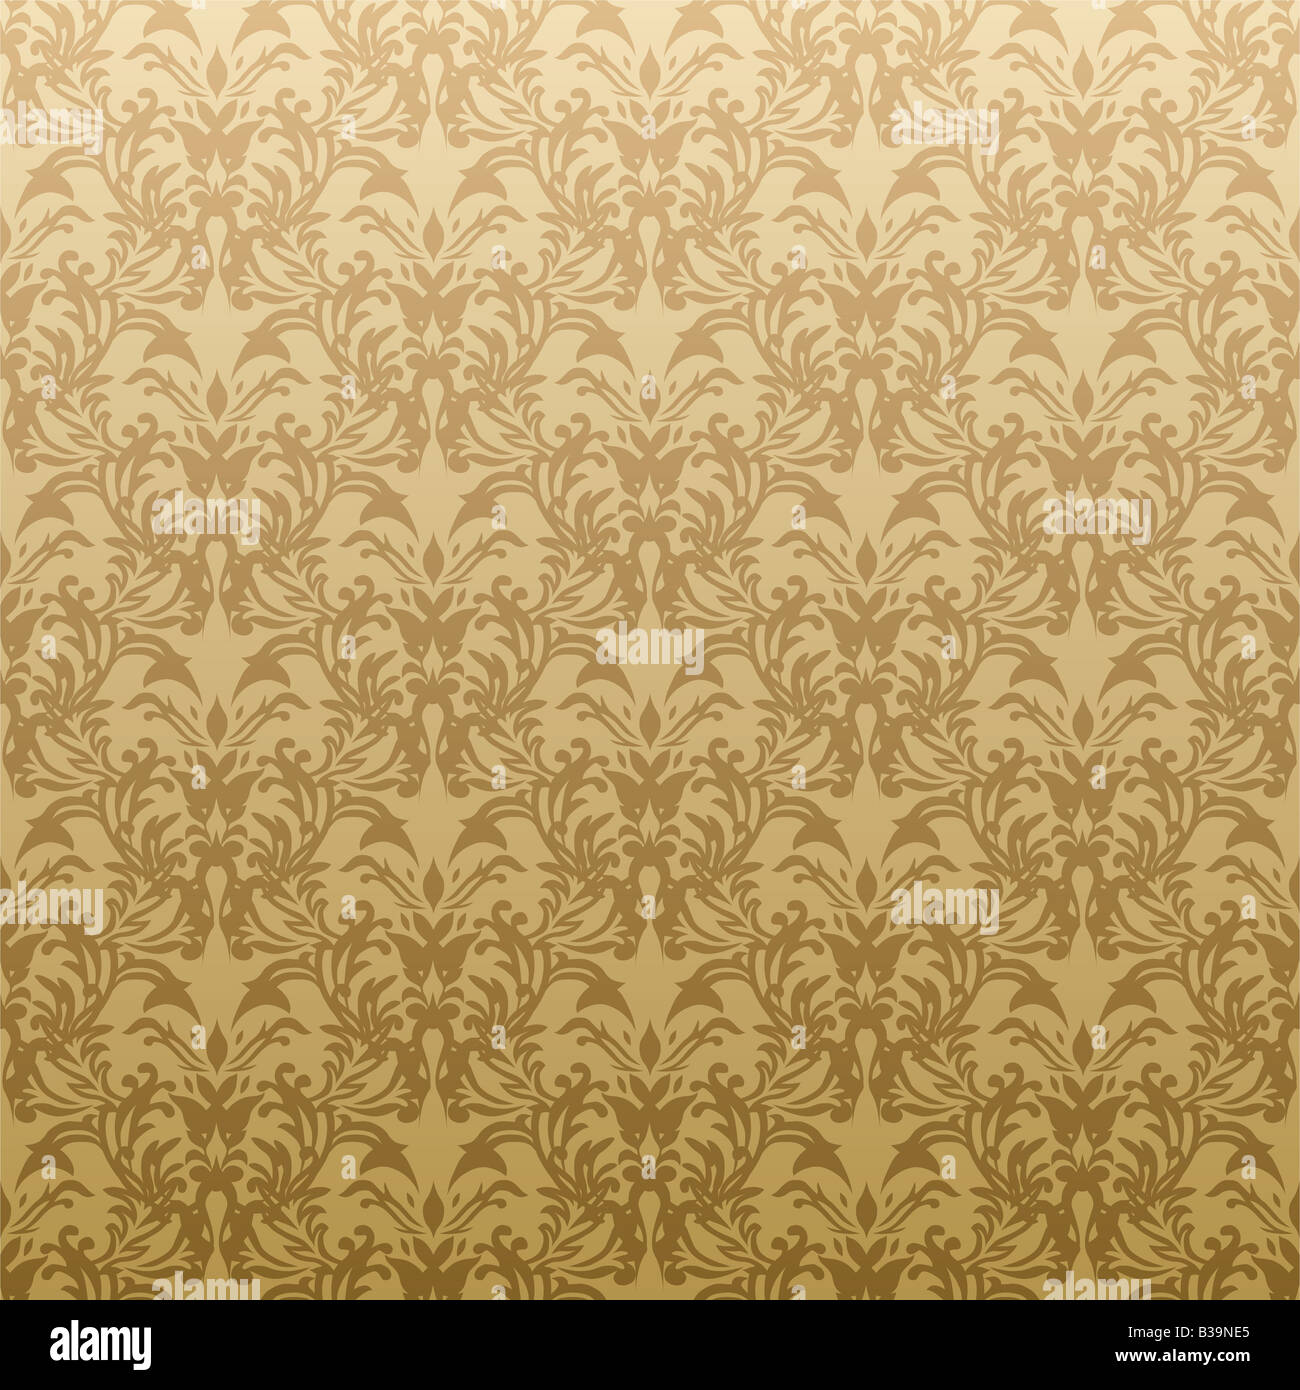 Floral Inspired Gothic Repeat Wallpaper Design In Gold